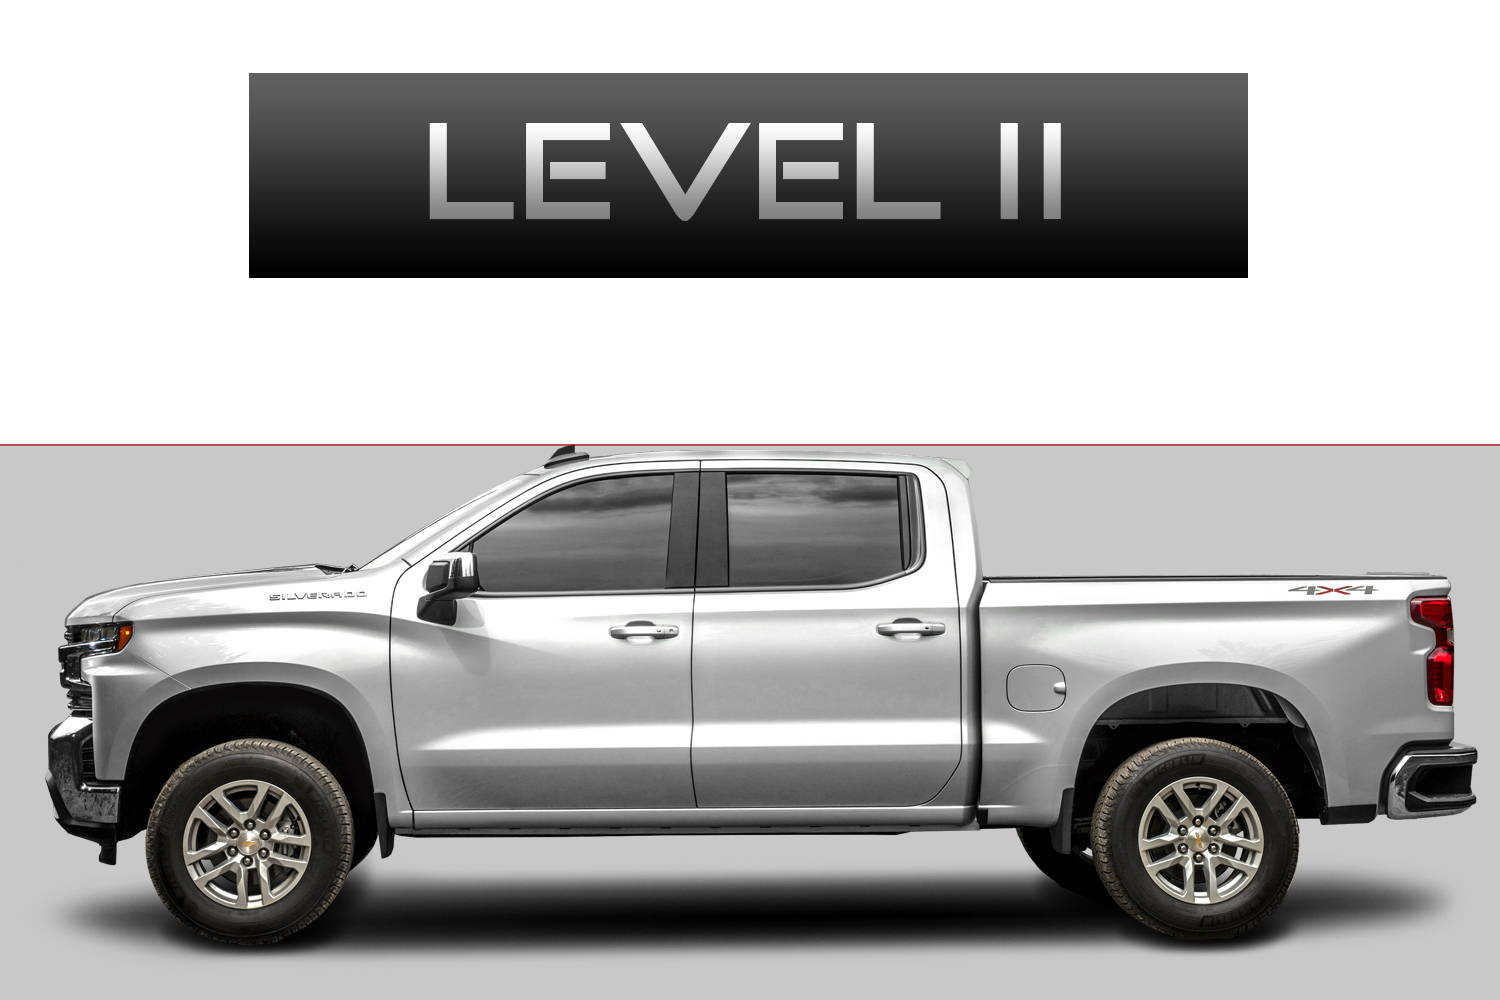 Chevrolet Silverado 1500 Off-Road Customizing Package Level 2 by 3C Trucks